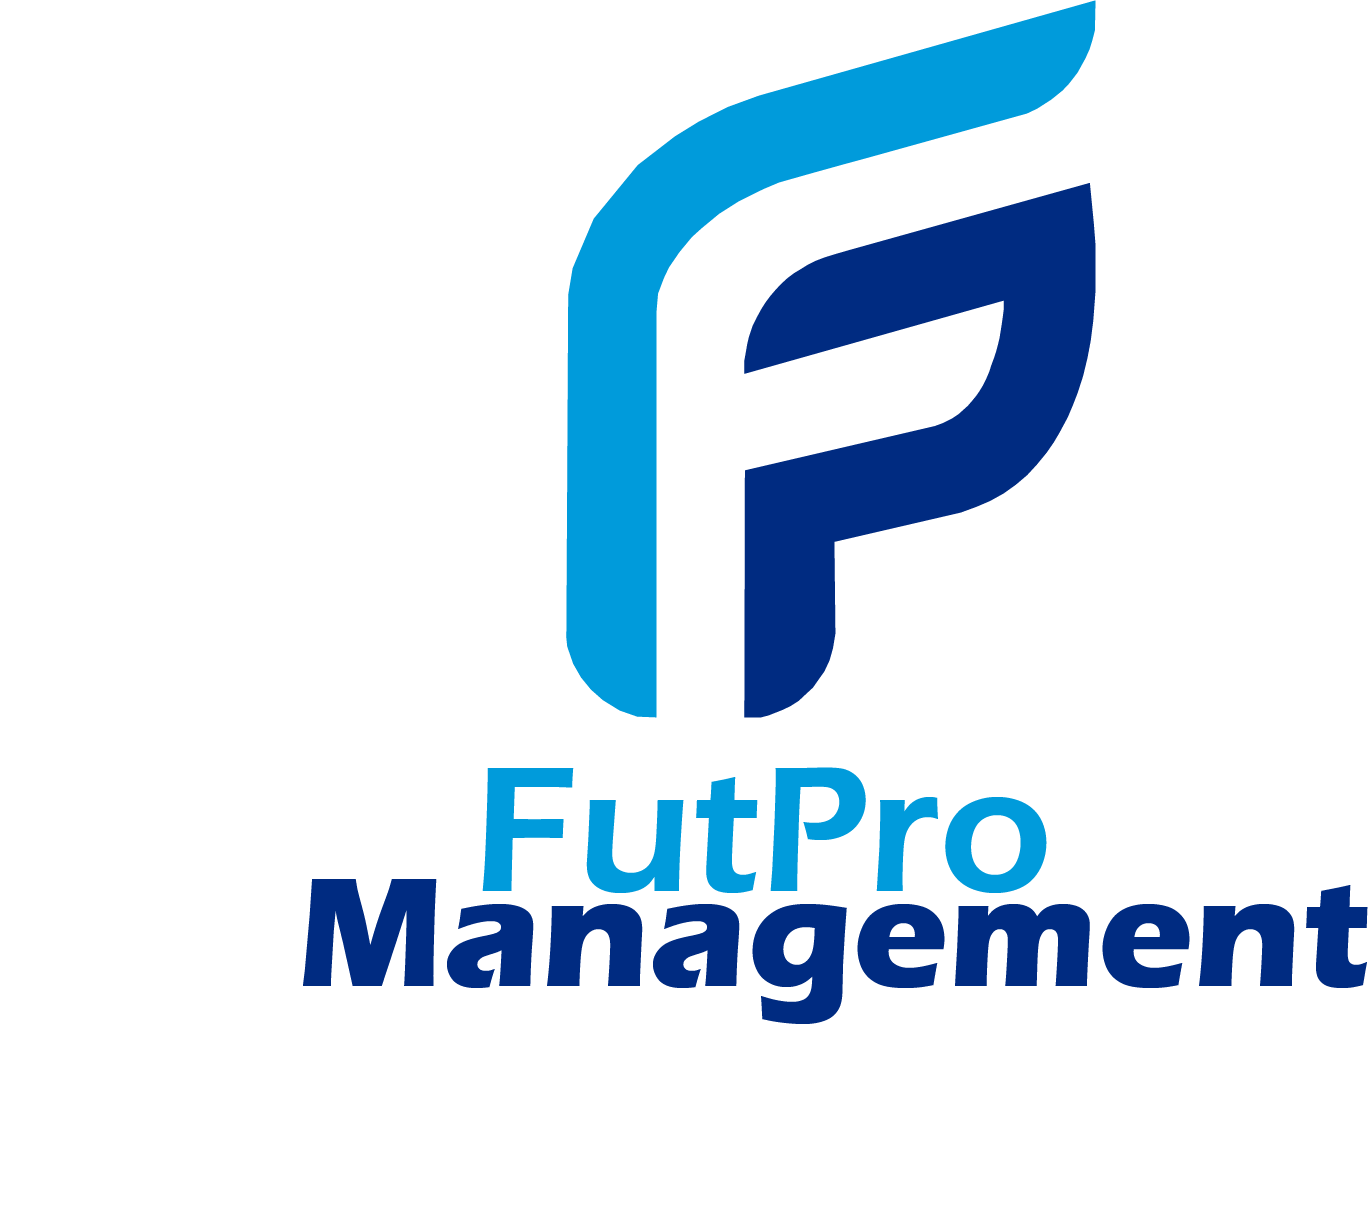 FUTPRO MANAGEMENT.